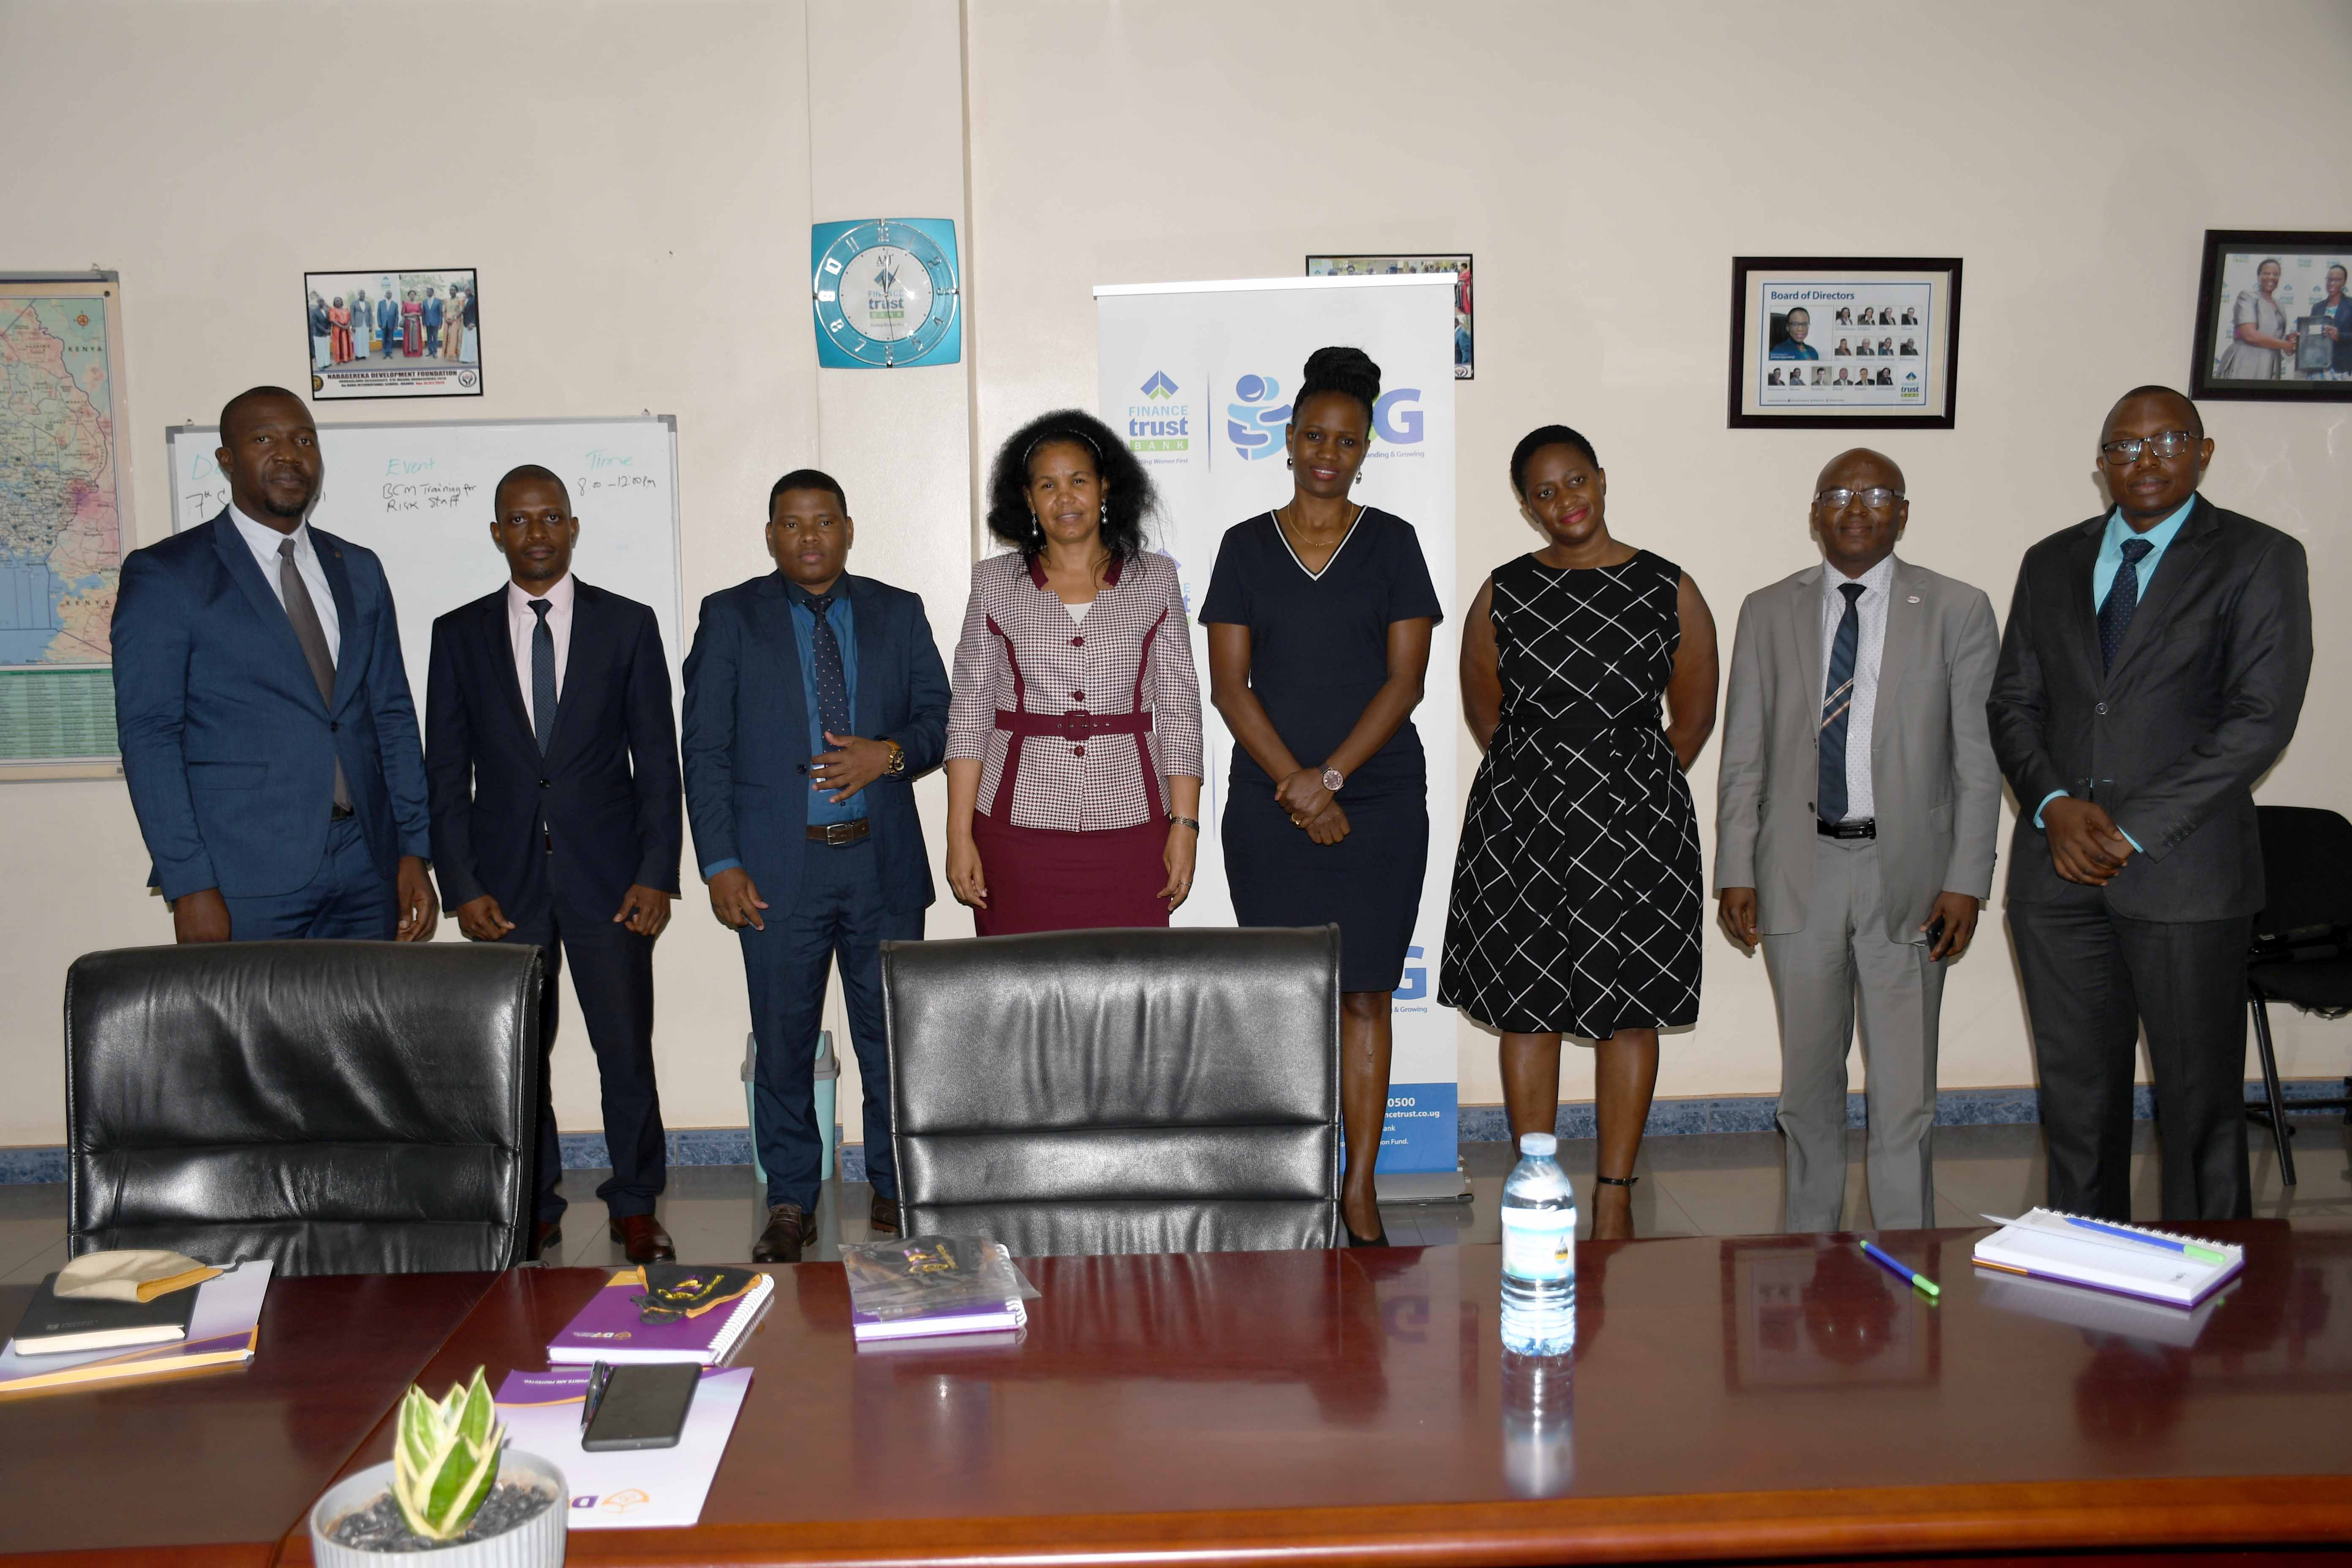 Courtesy Visit To Finance Trust Bank